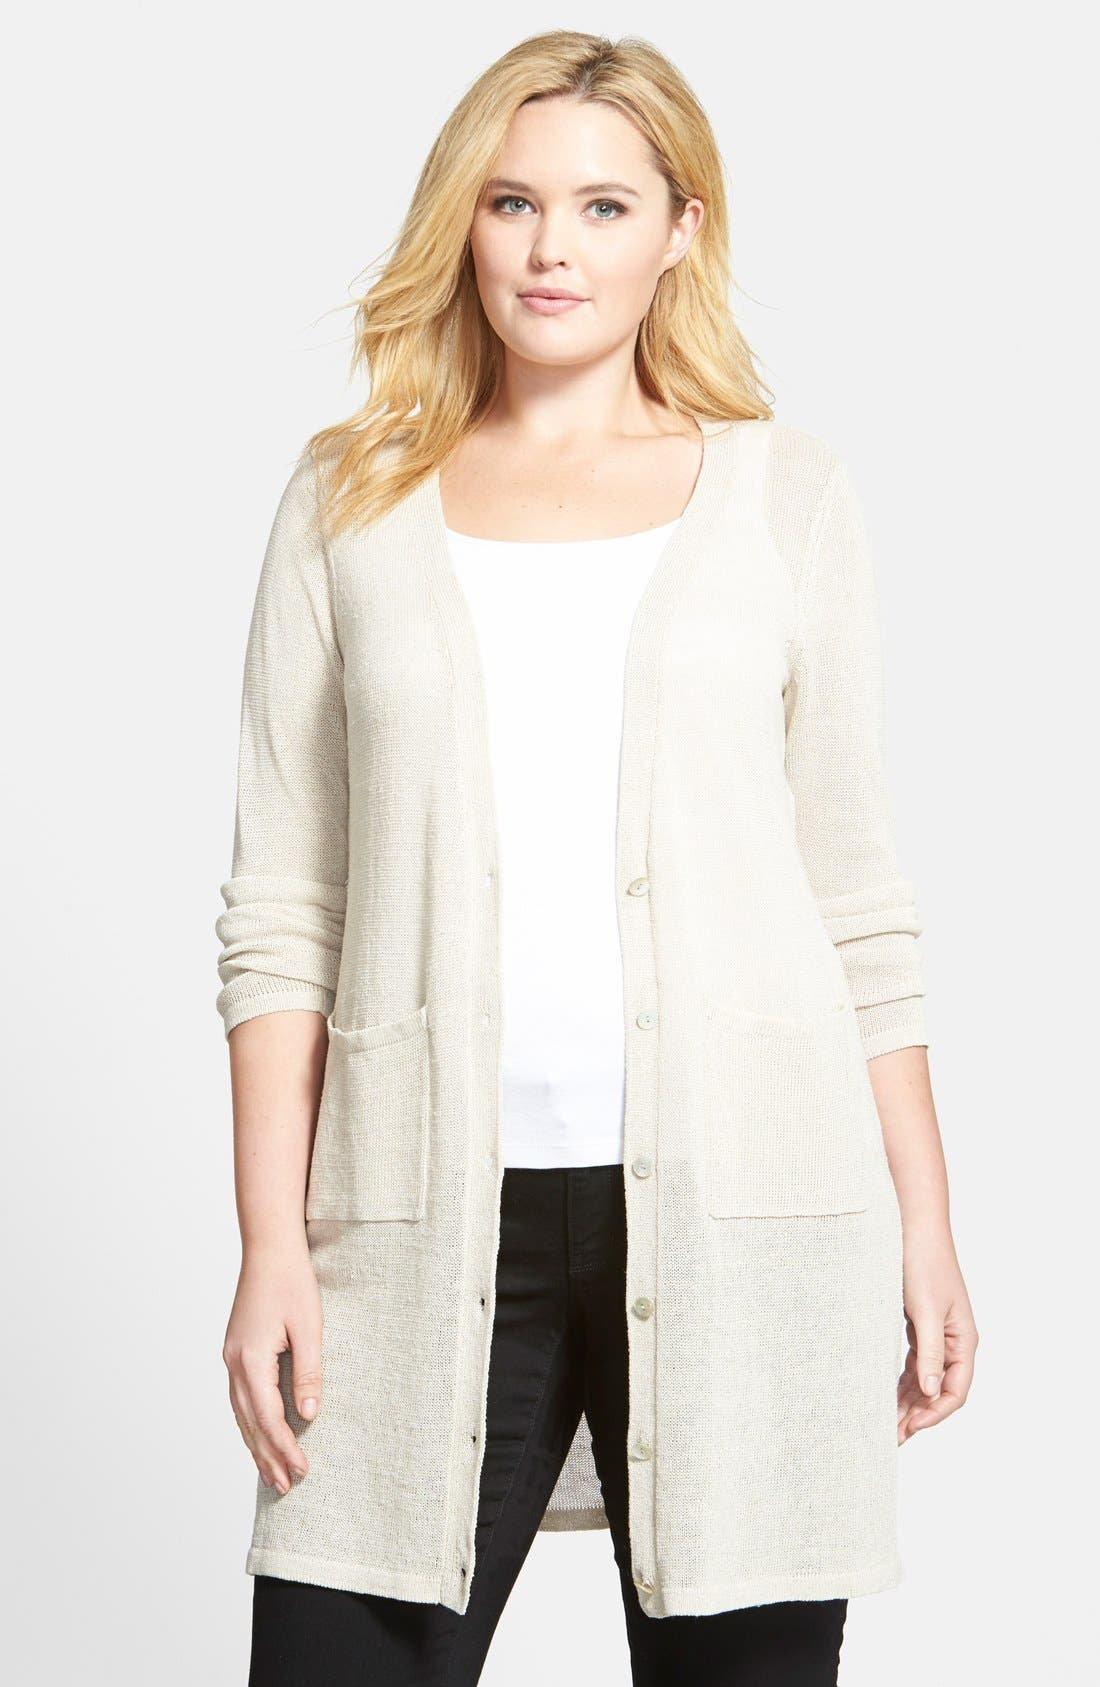 Shop dressbarn for the latest in plus size sweaters. You'll discover on trend styles in a variety of patterns and prints that can be worn for any occasion. Add some extra flair to your weekend or workwear wardrobe with plus size sweaters.